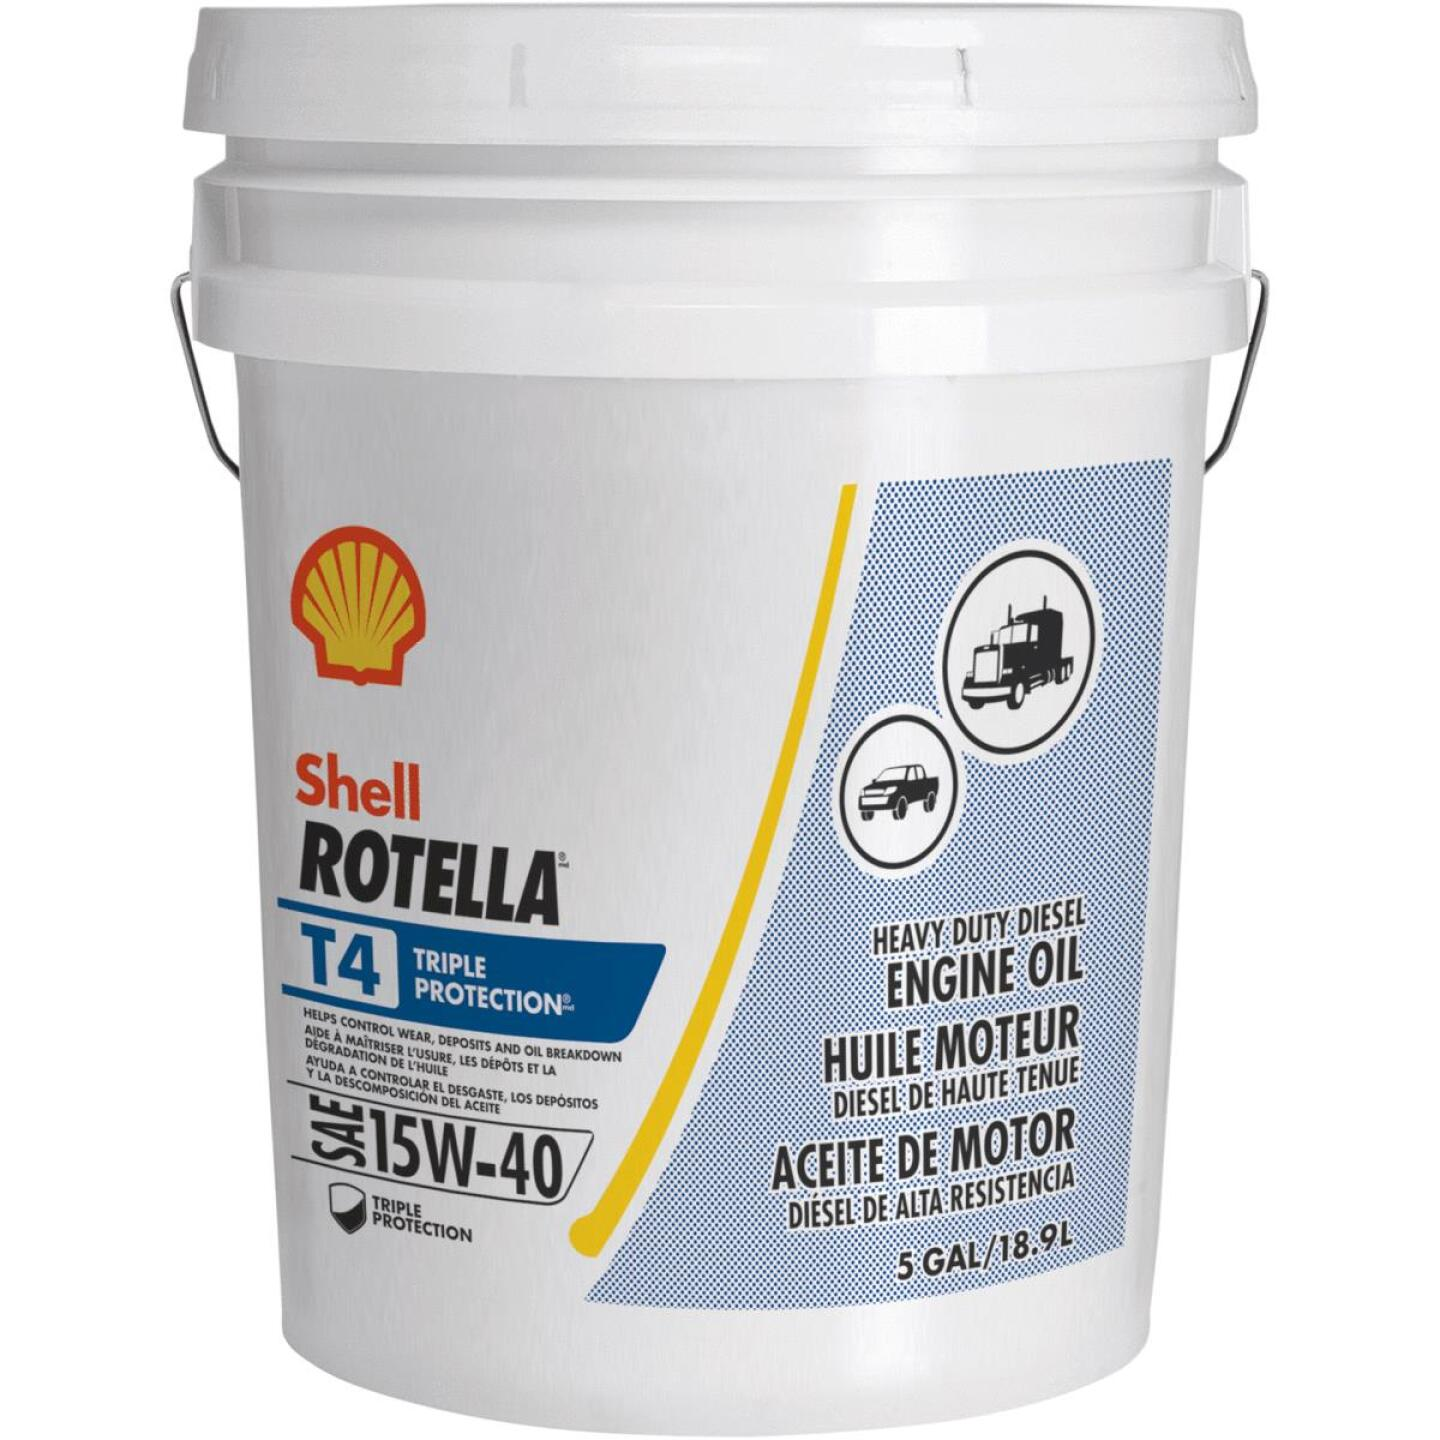 ROTELLA 15W40 5 Gal Triple Protection Motor Oil Image 1